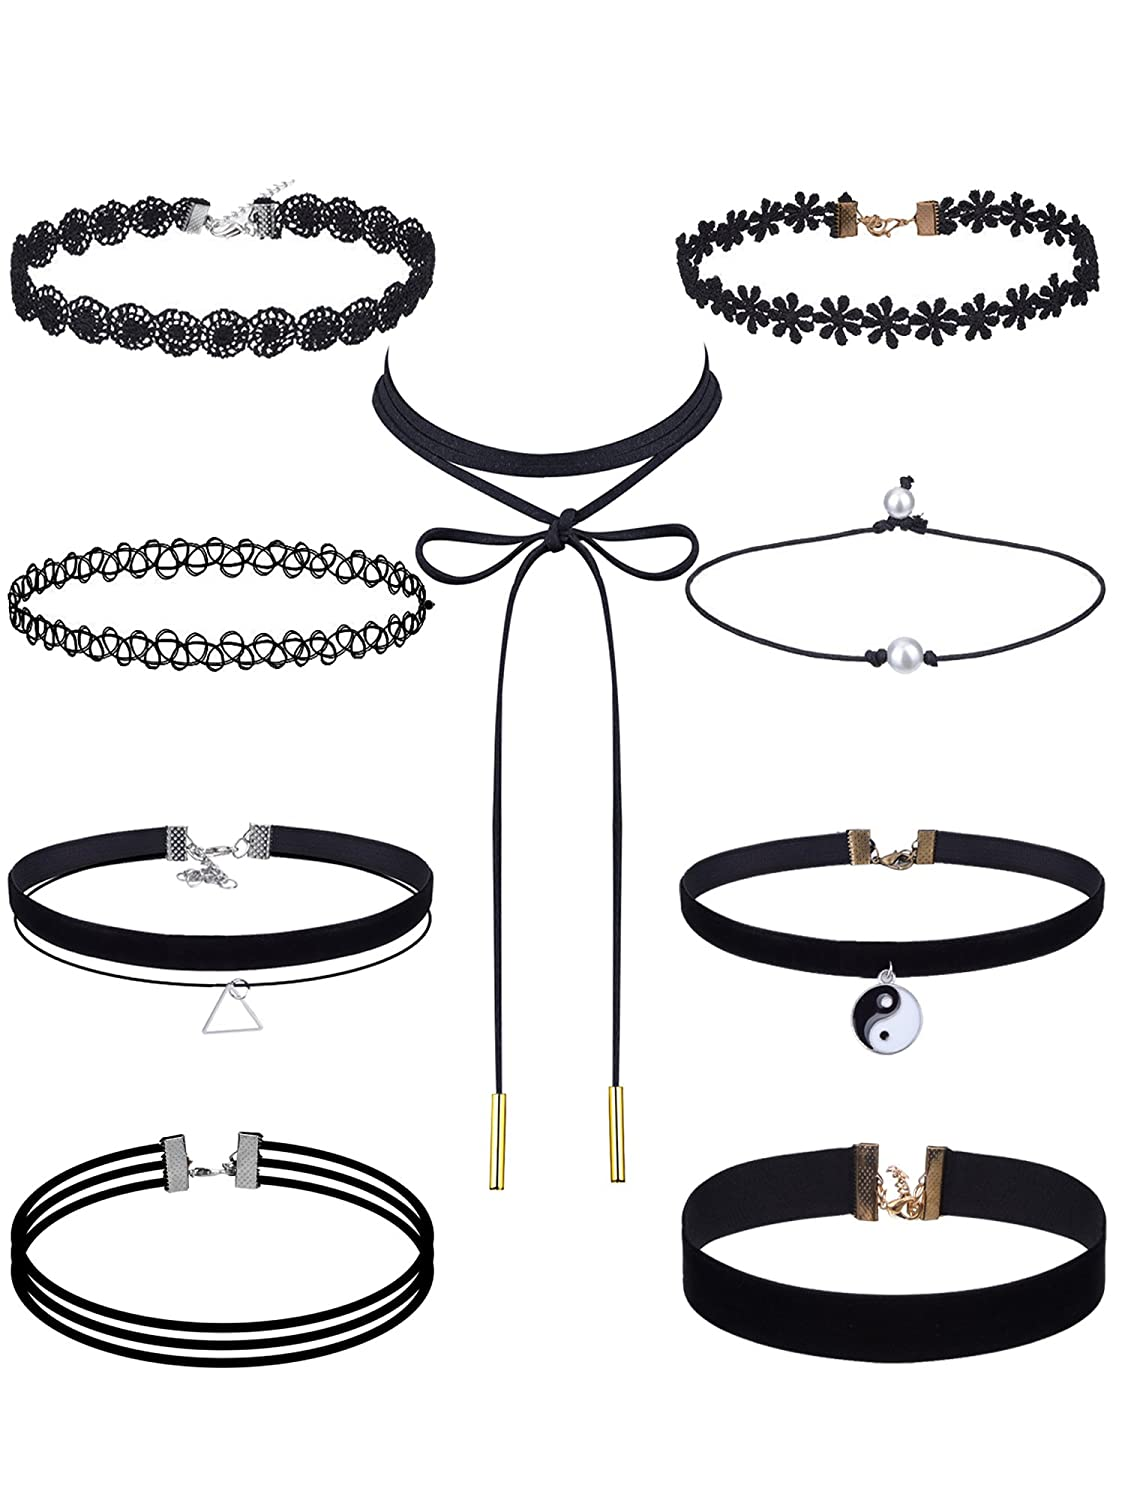 eBoot Black Choker Necklaces Set Velvet Tattoo Lace Choker Set for Women and Girls, 9 Pieces EBOOT-CHOKER-CHAINS-03